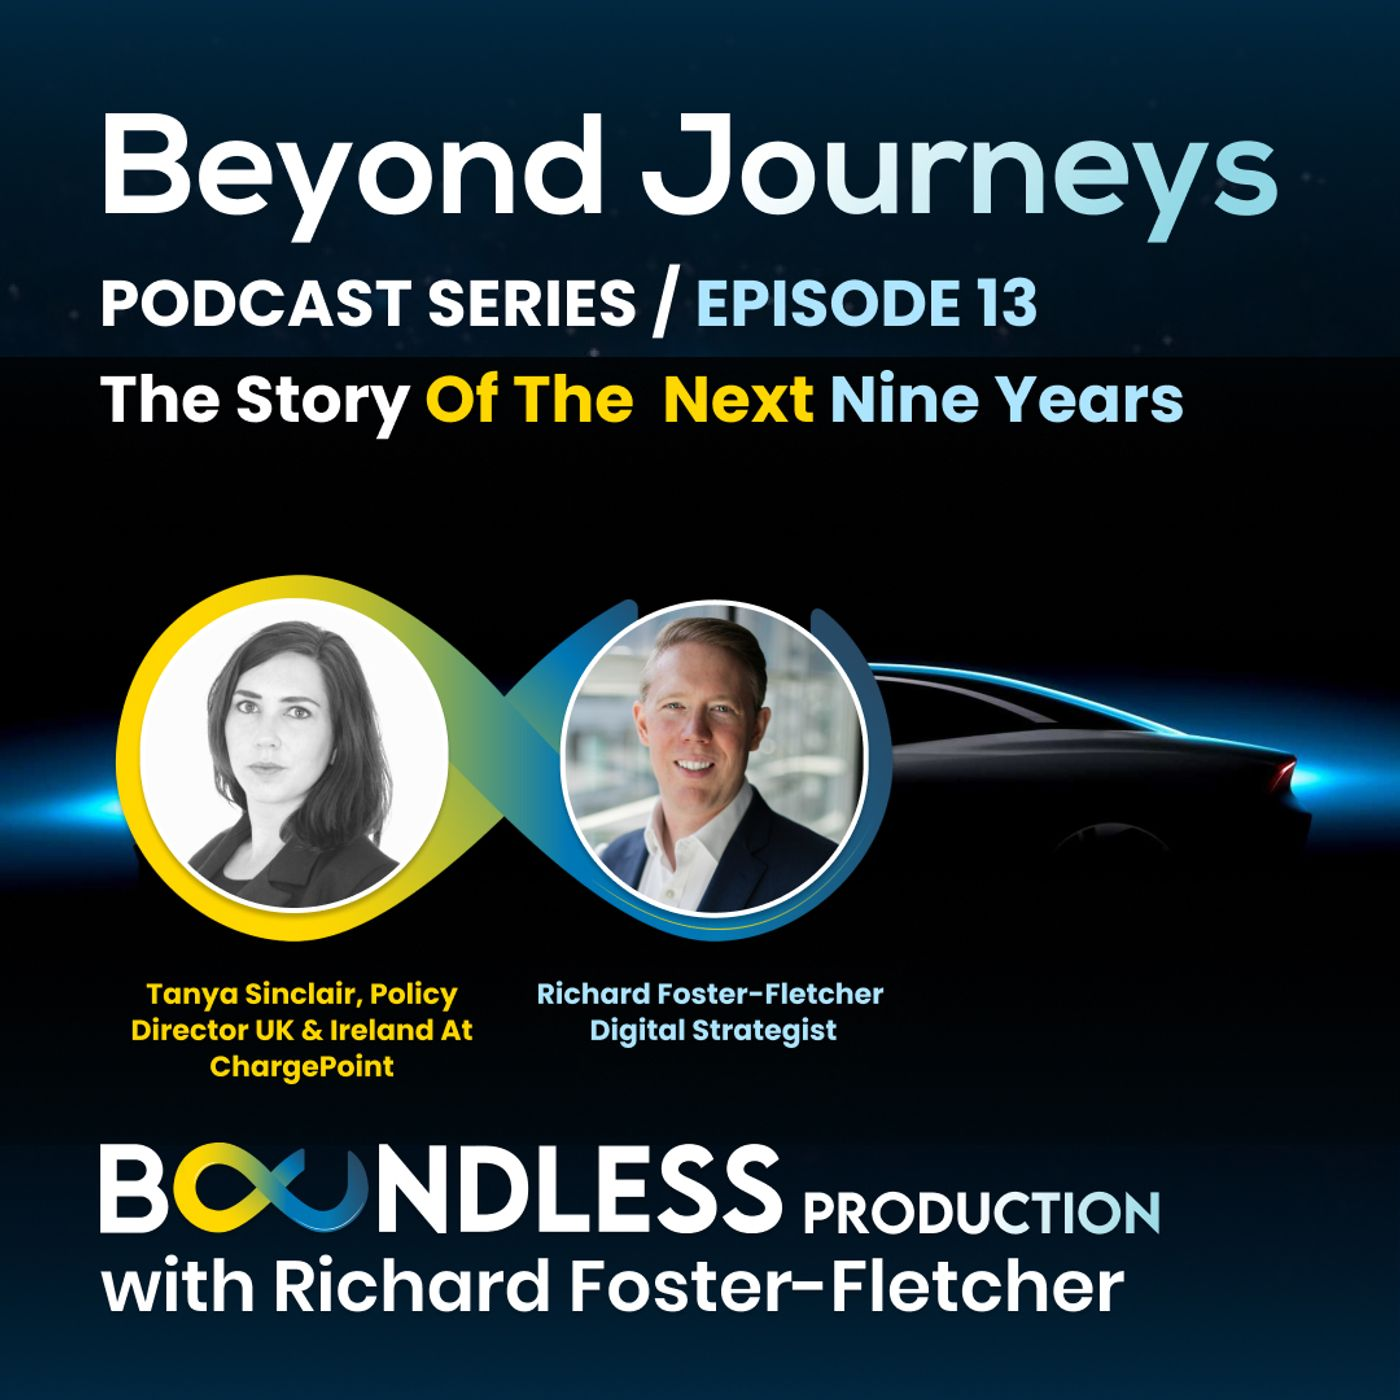 EP13 Beyond Journeys: Tanya Sinclair, Policy Director UK & Ireland at ChargePoint: The story of the next 9 years